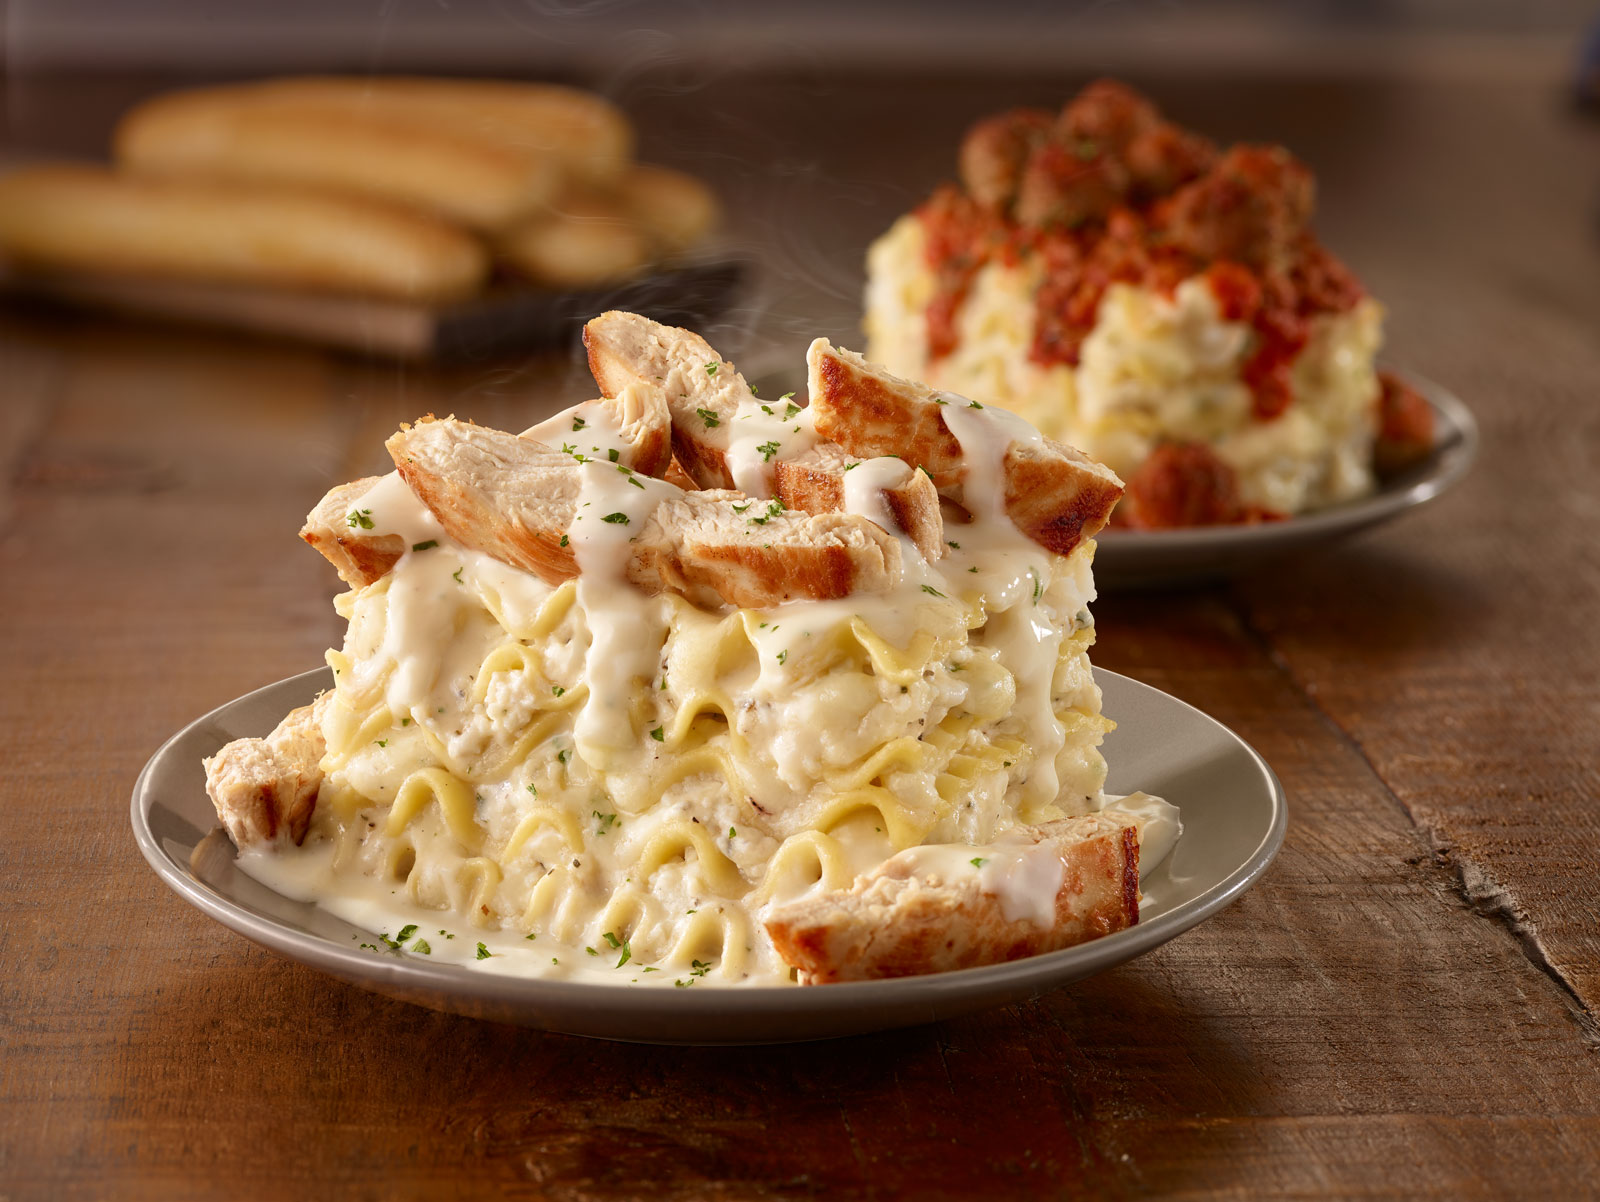 Olive Garden Introduces 'Customizable' Lasagna